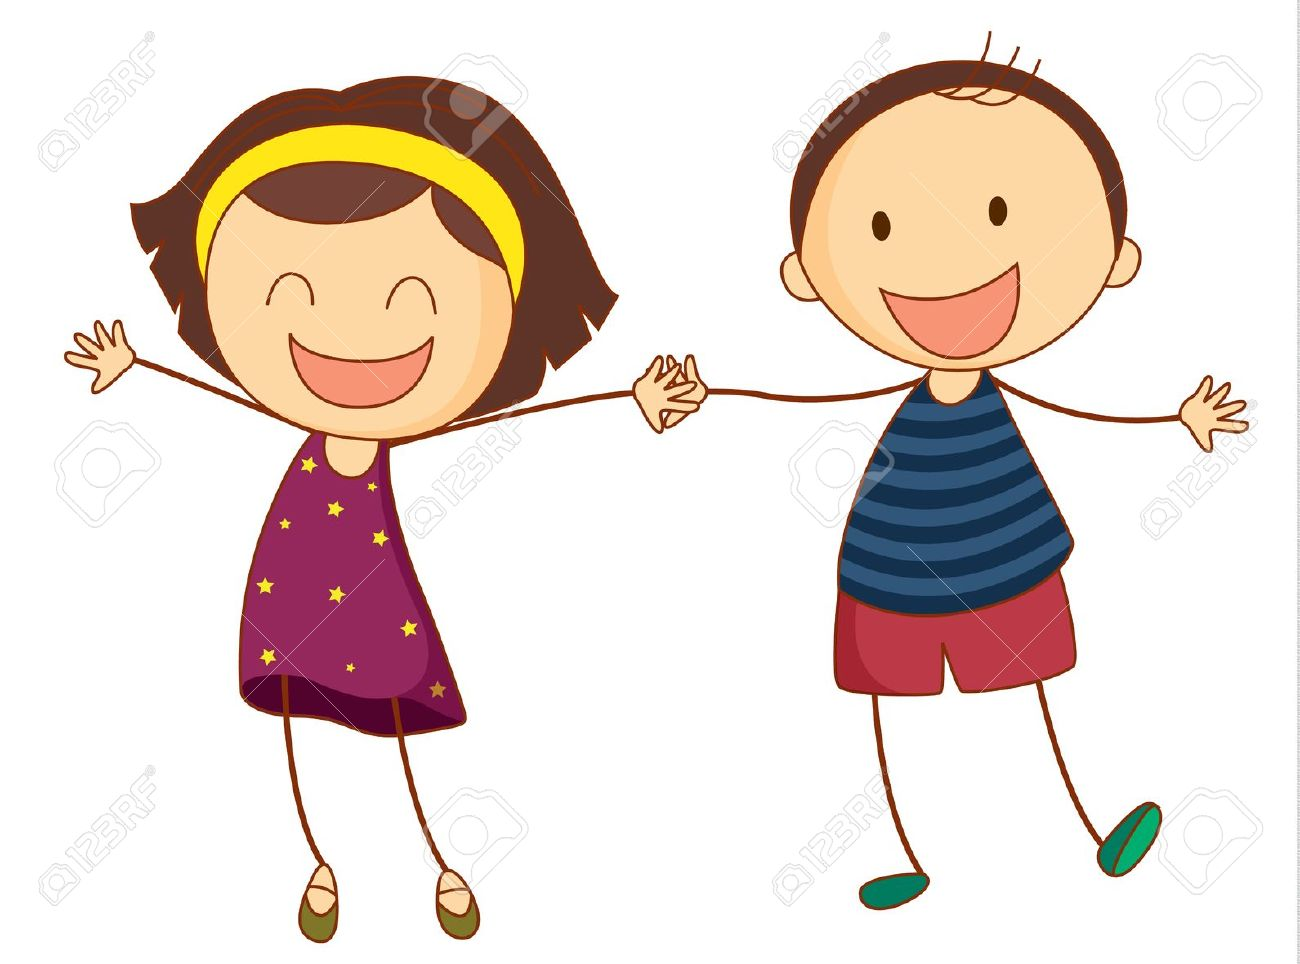 Brothers and sisters clipart - Clipground